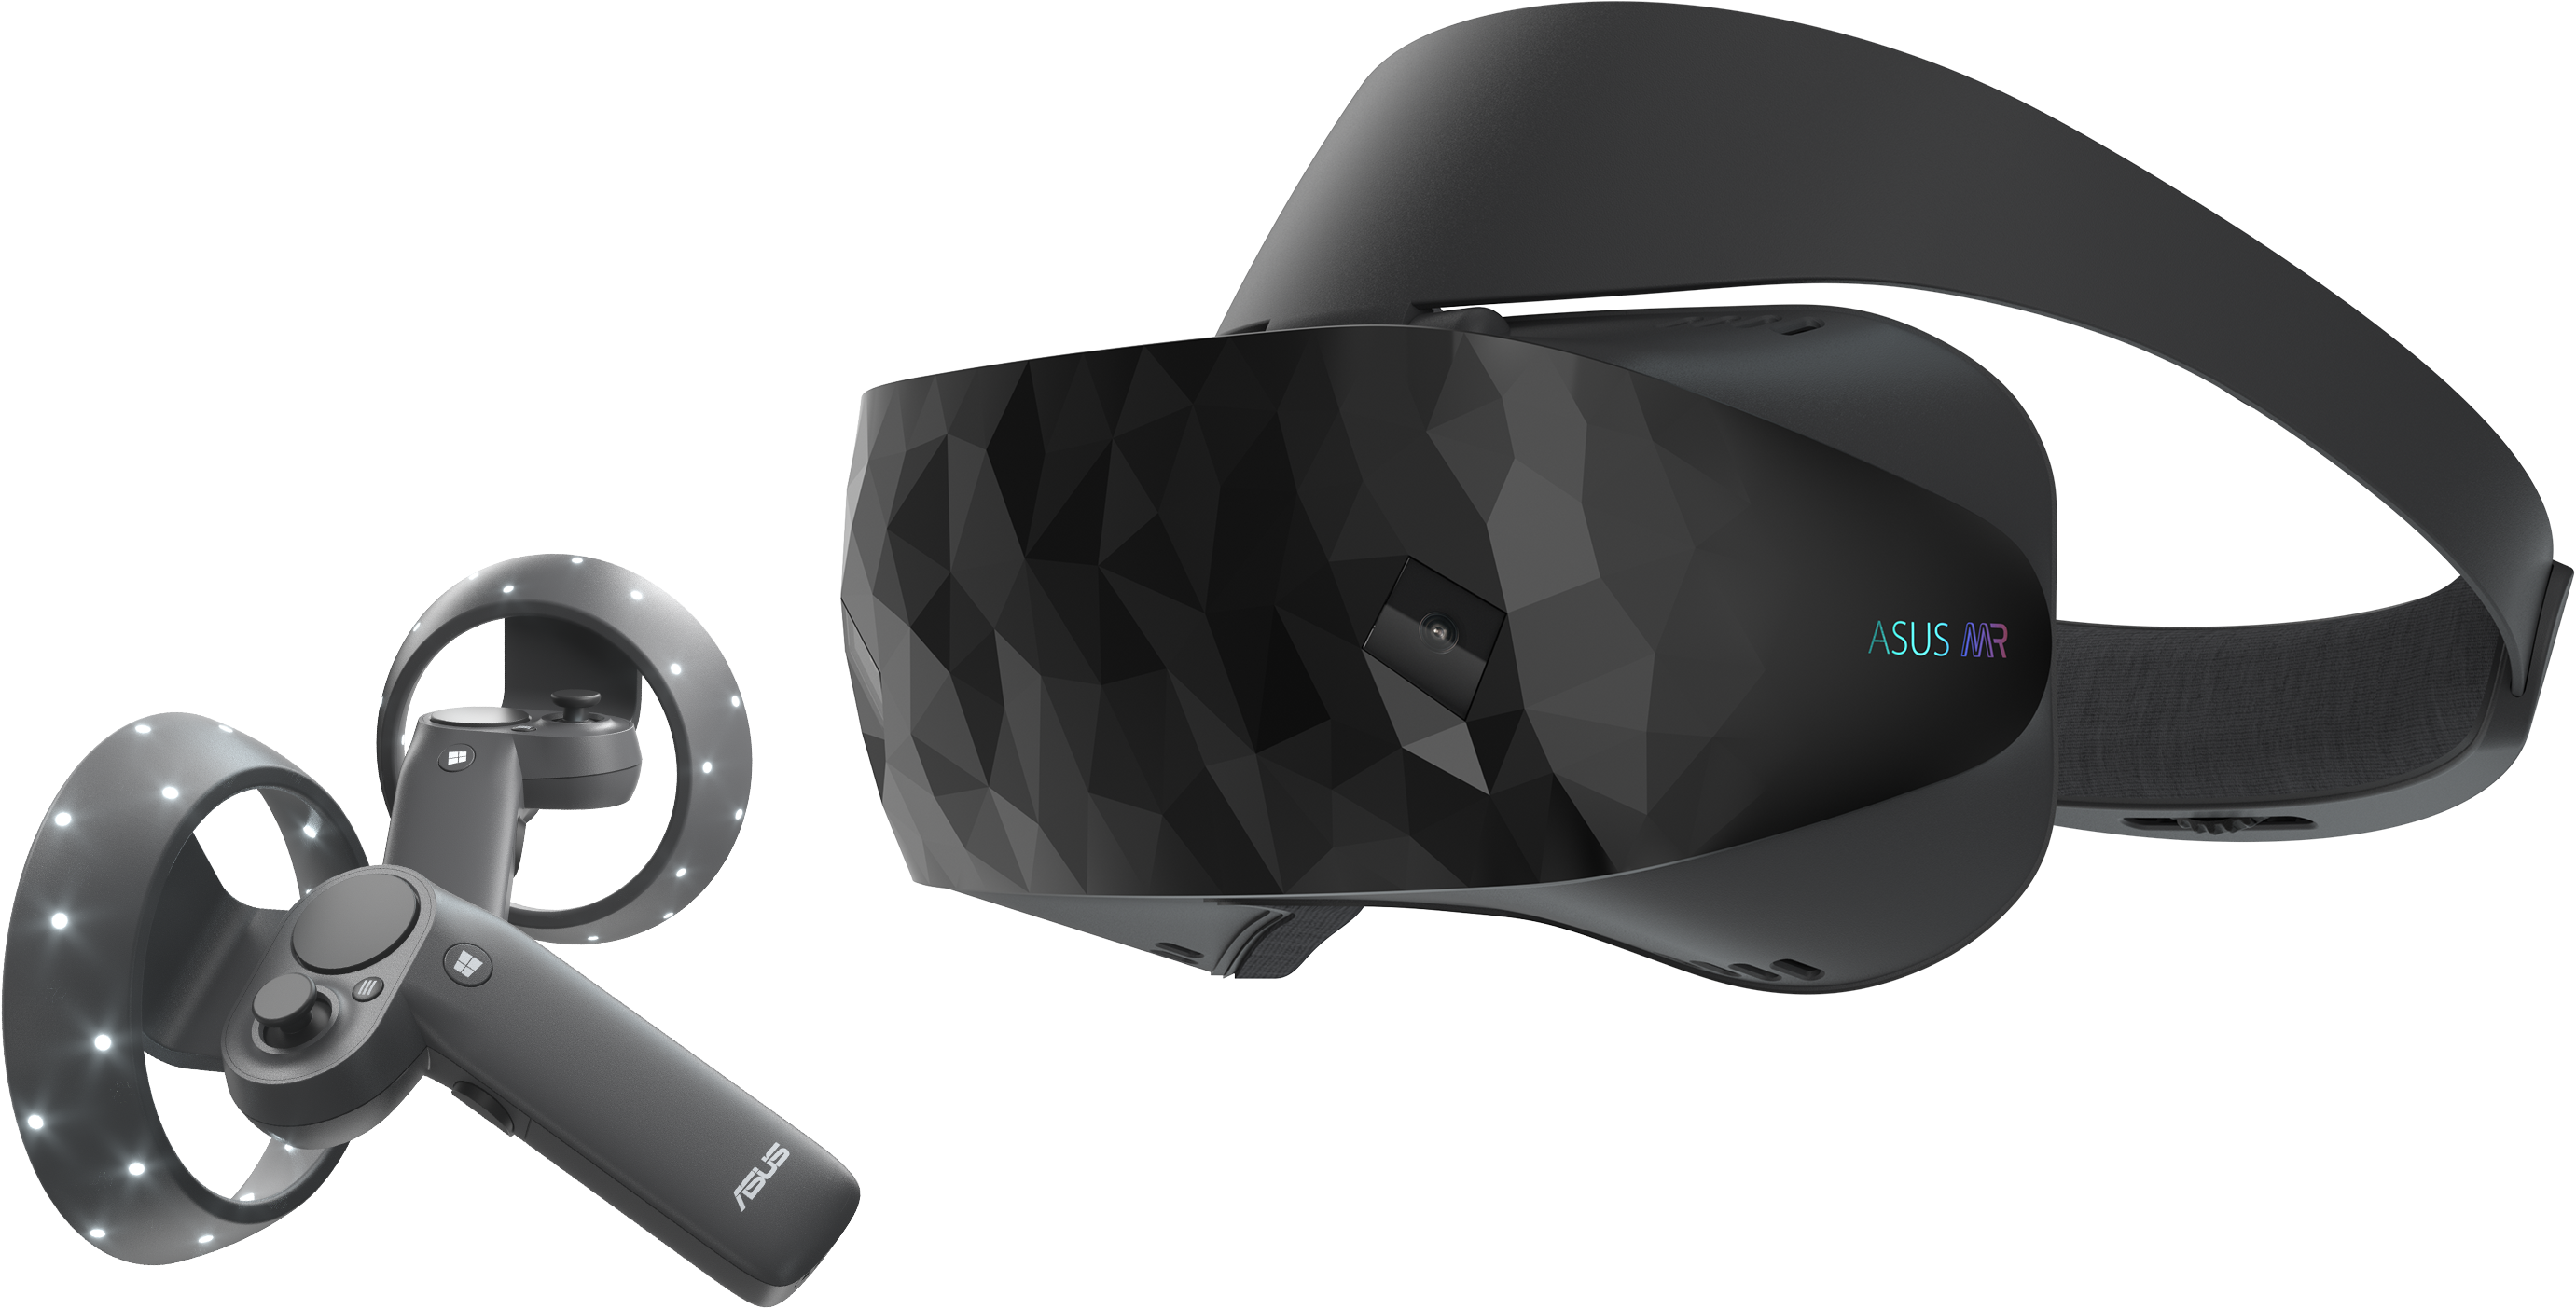 ASUS Windows Mixed Reality Headset with Motion Controllers